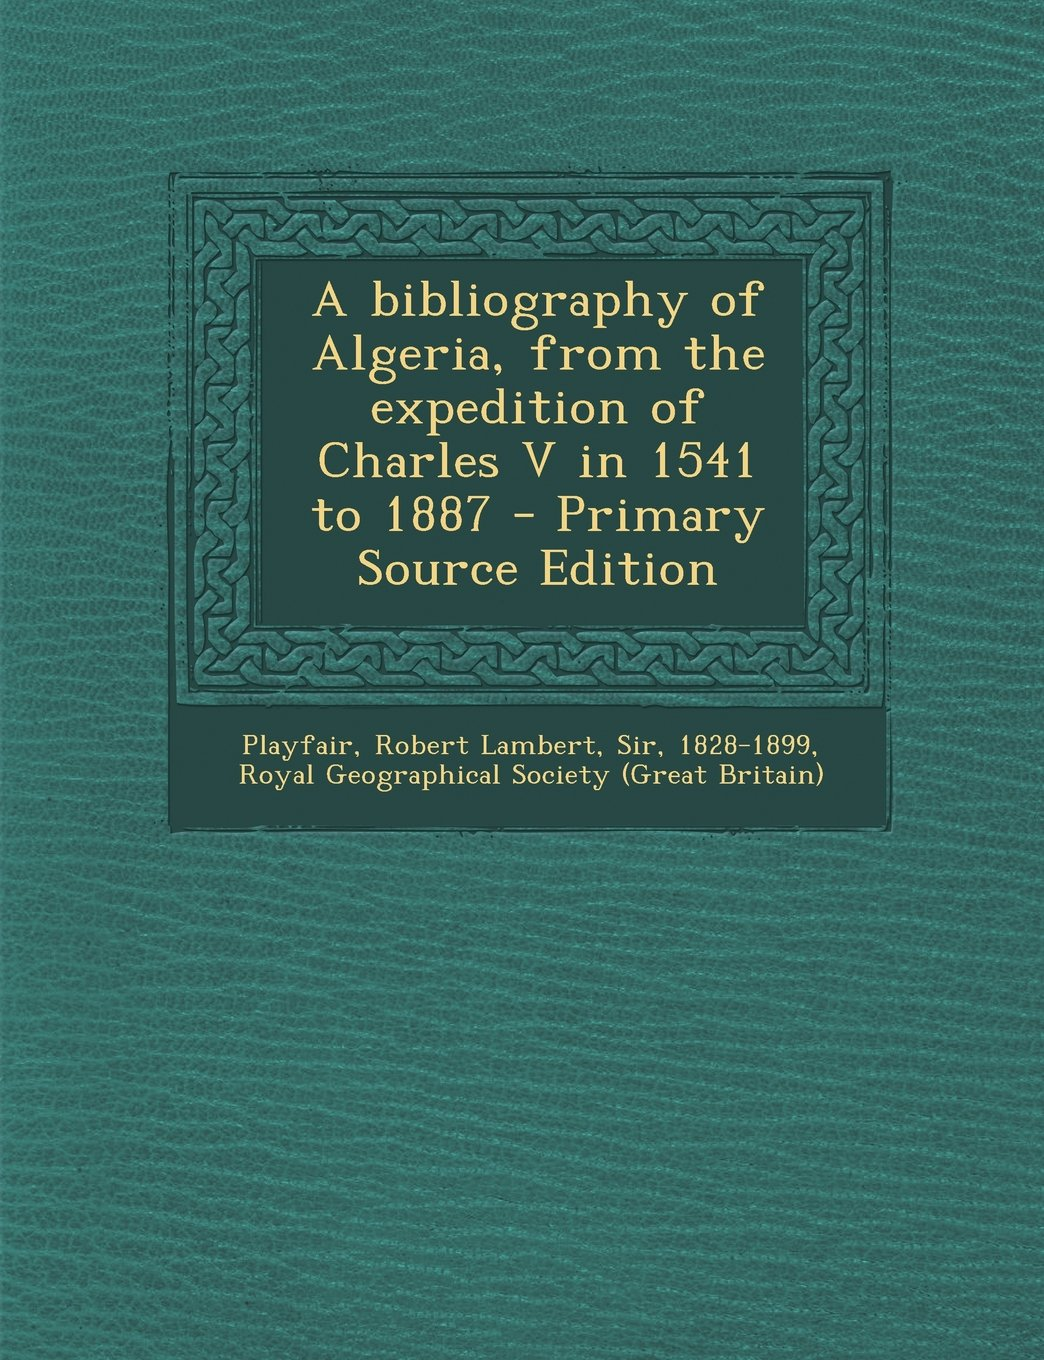 A bibliography of Algeria, from the expedition of Charles V in 1541 to 1887